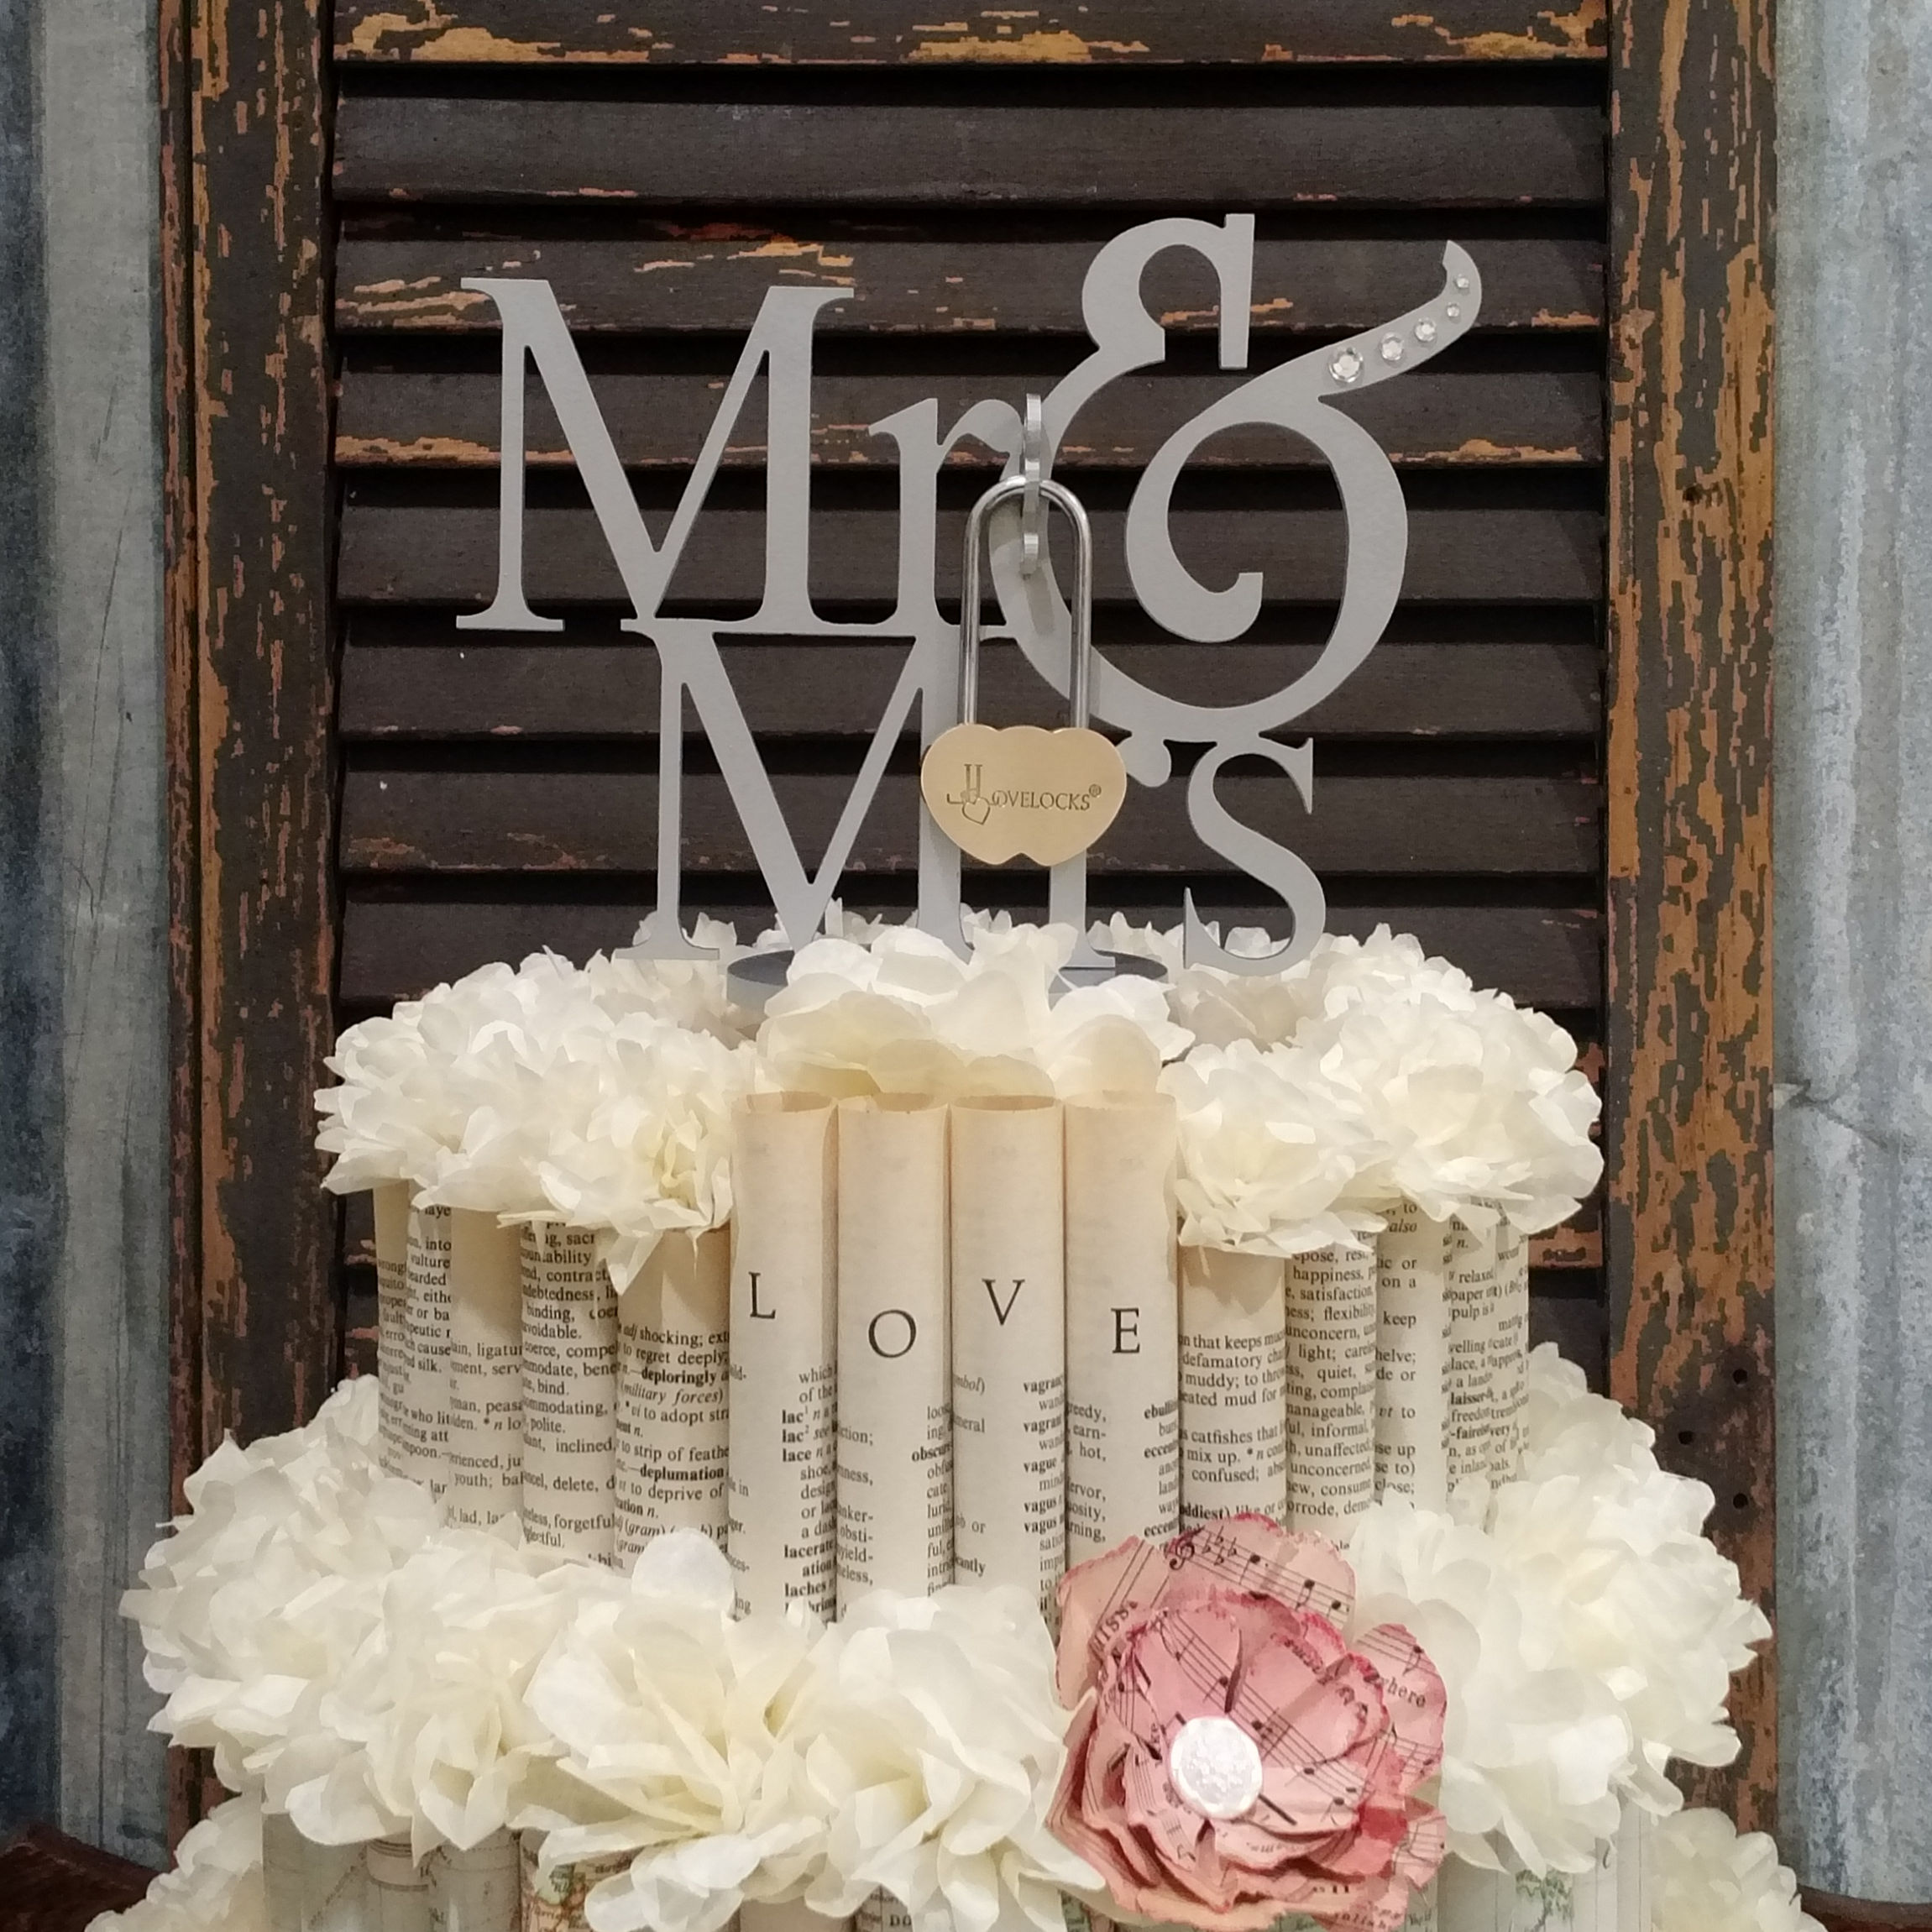 LoveLocks® Mr & Mrs Cake Topper – Lovelocks